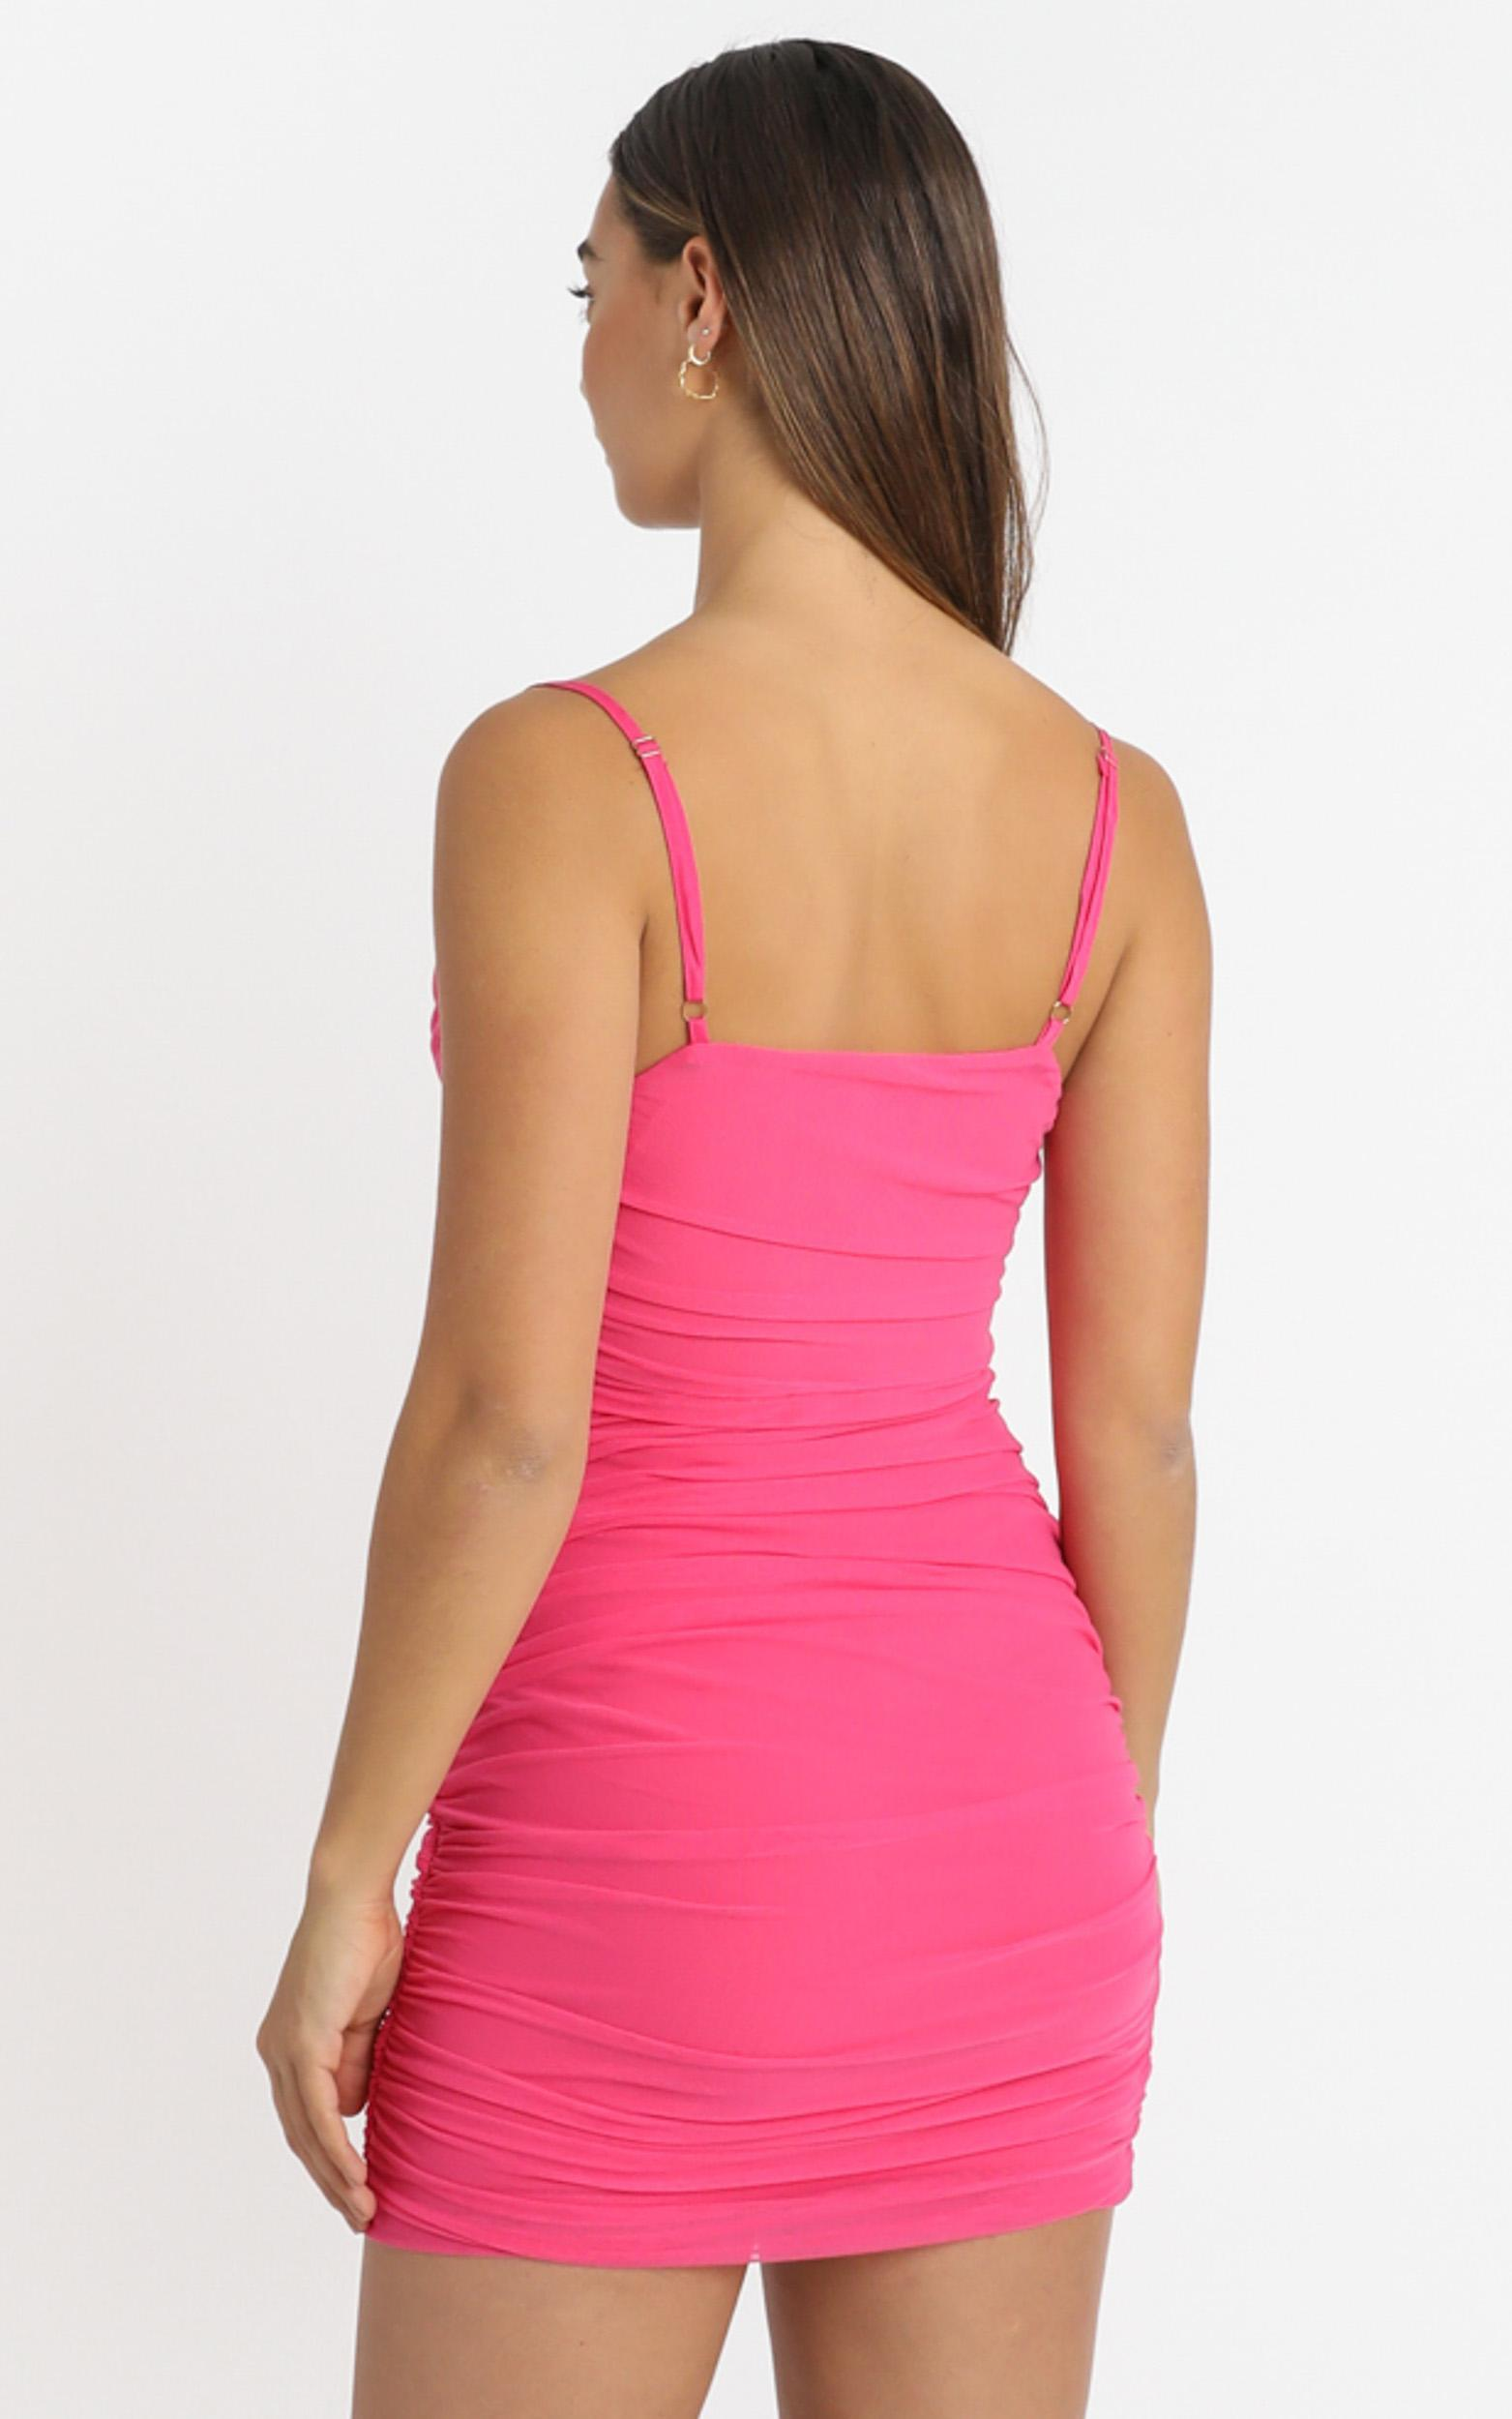 Baby You Got That Glow Dress in hot pink mesh - 4 (XXS), Pink, hi-res image number null